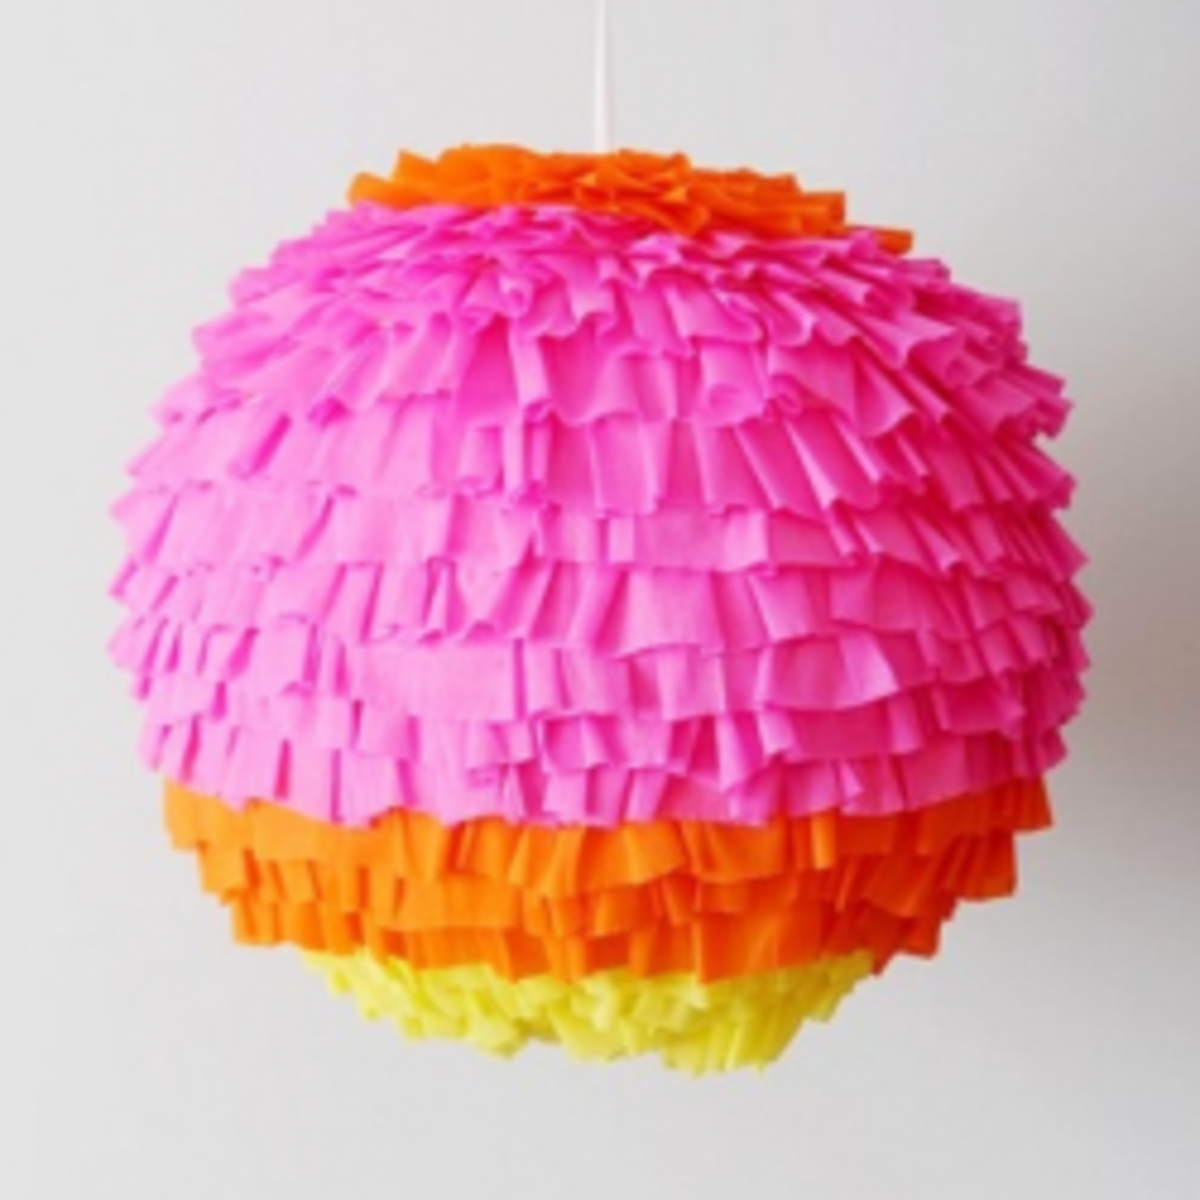 DIY Lamps & Lights | Roundup of Home Décor Craft Projects